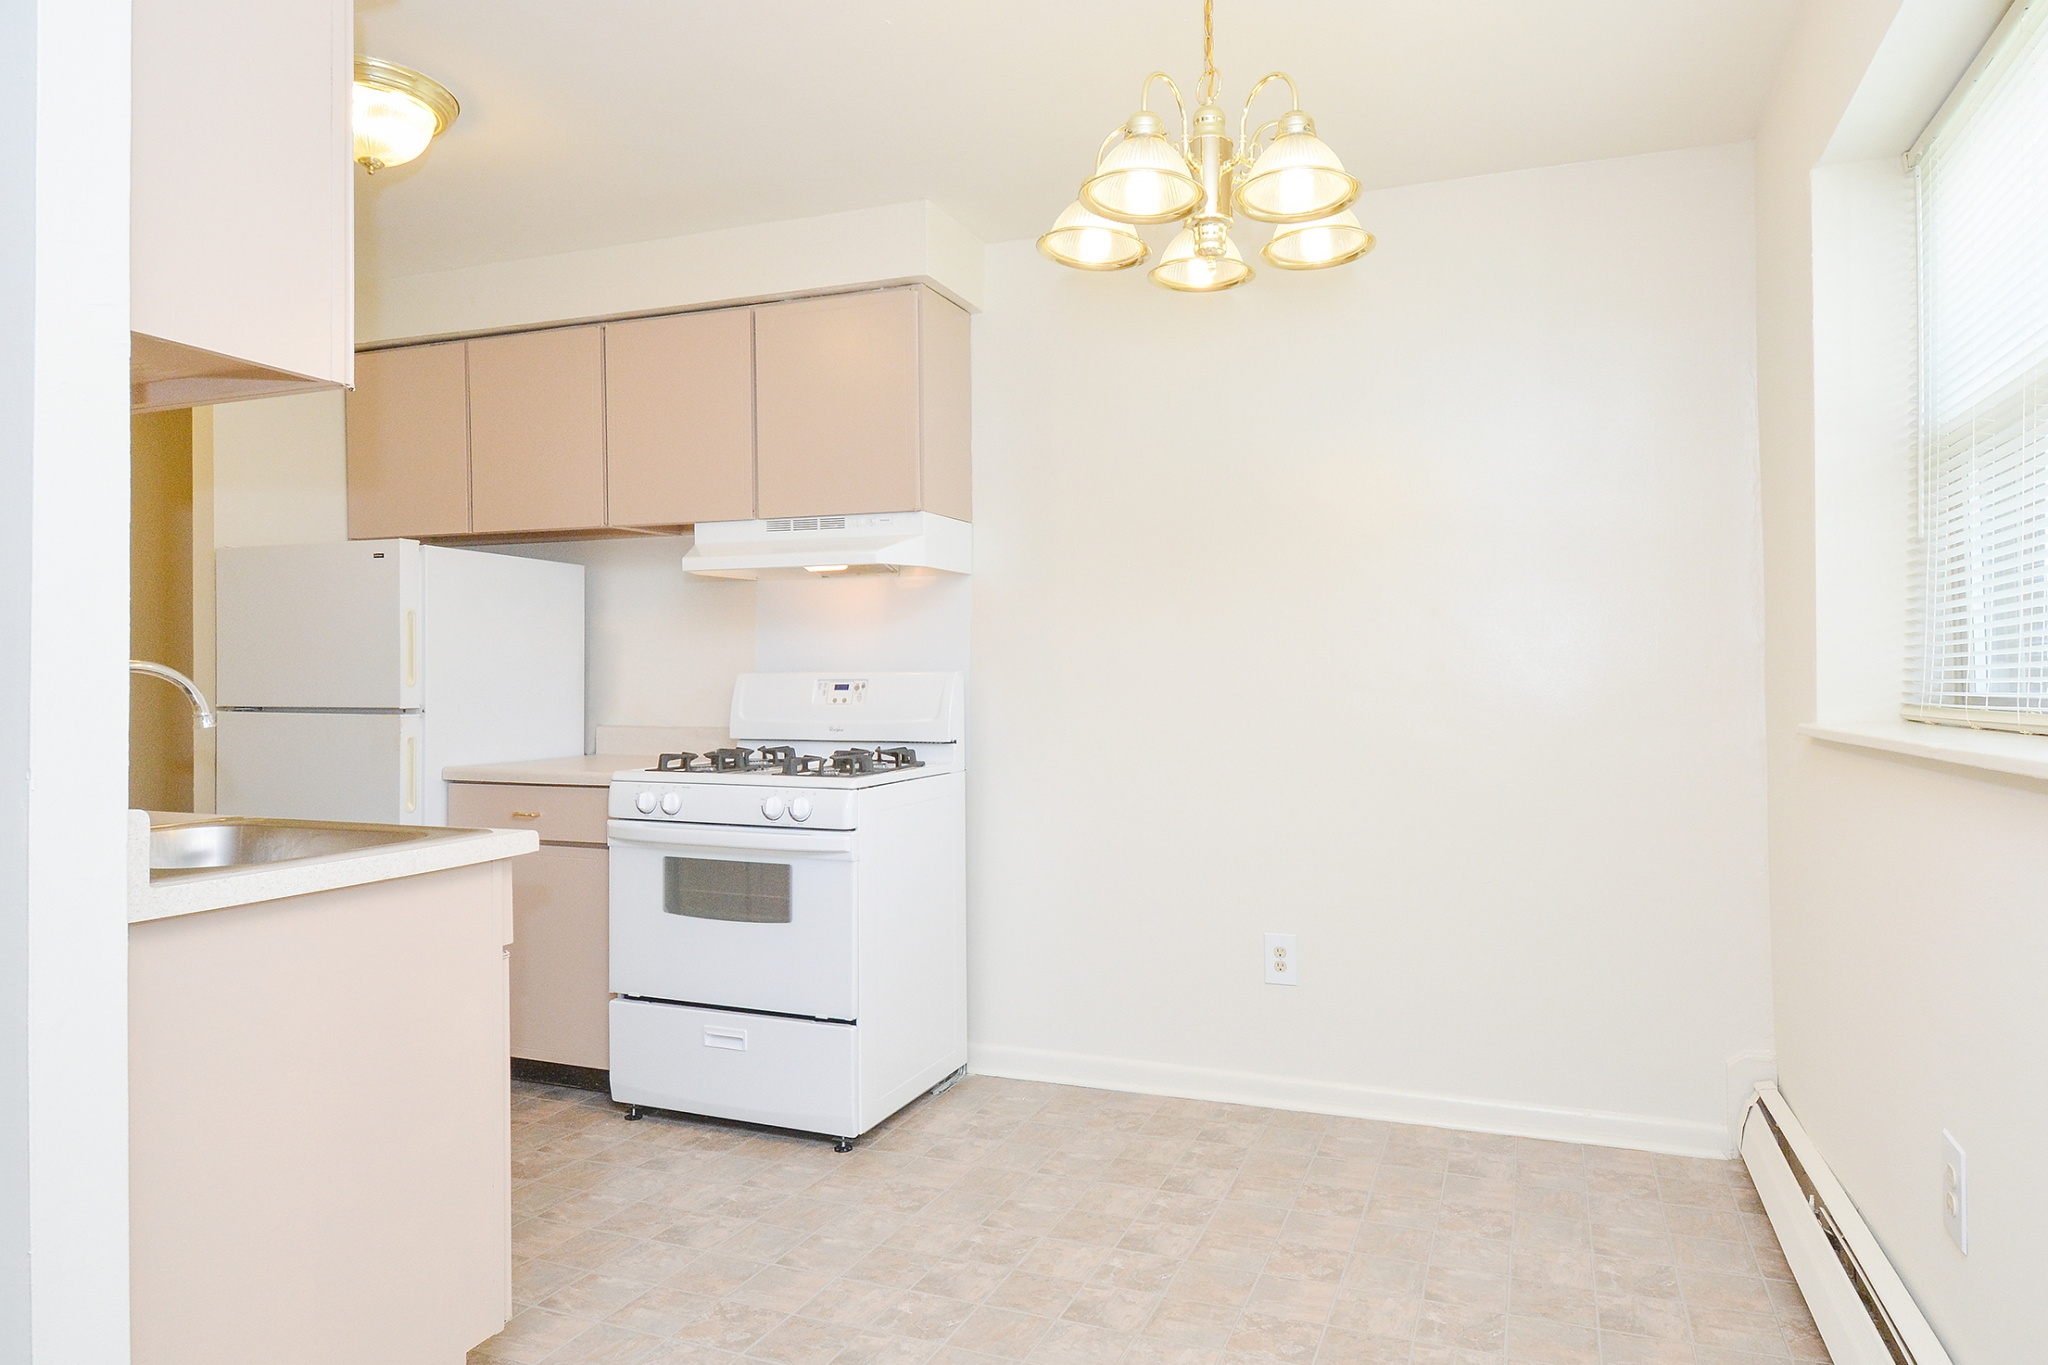 Newport Village Sample Dining Room with Chandelier and white Appliances | Levittown PA Apartments